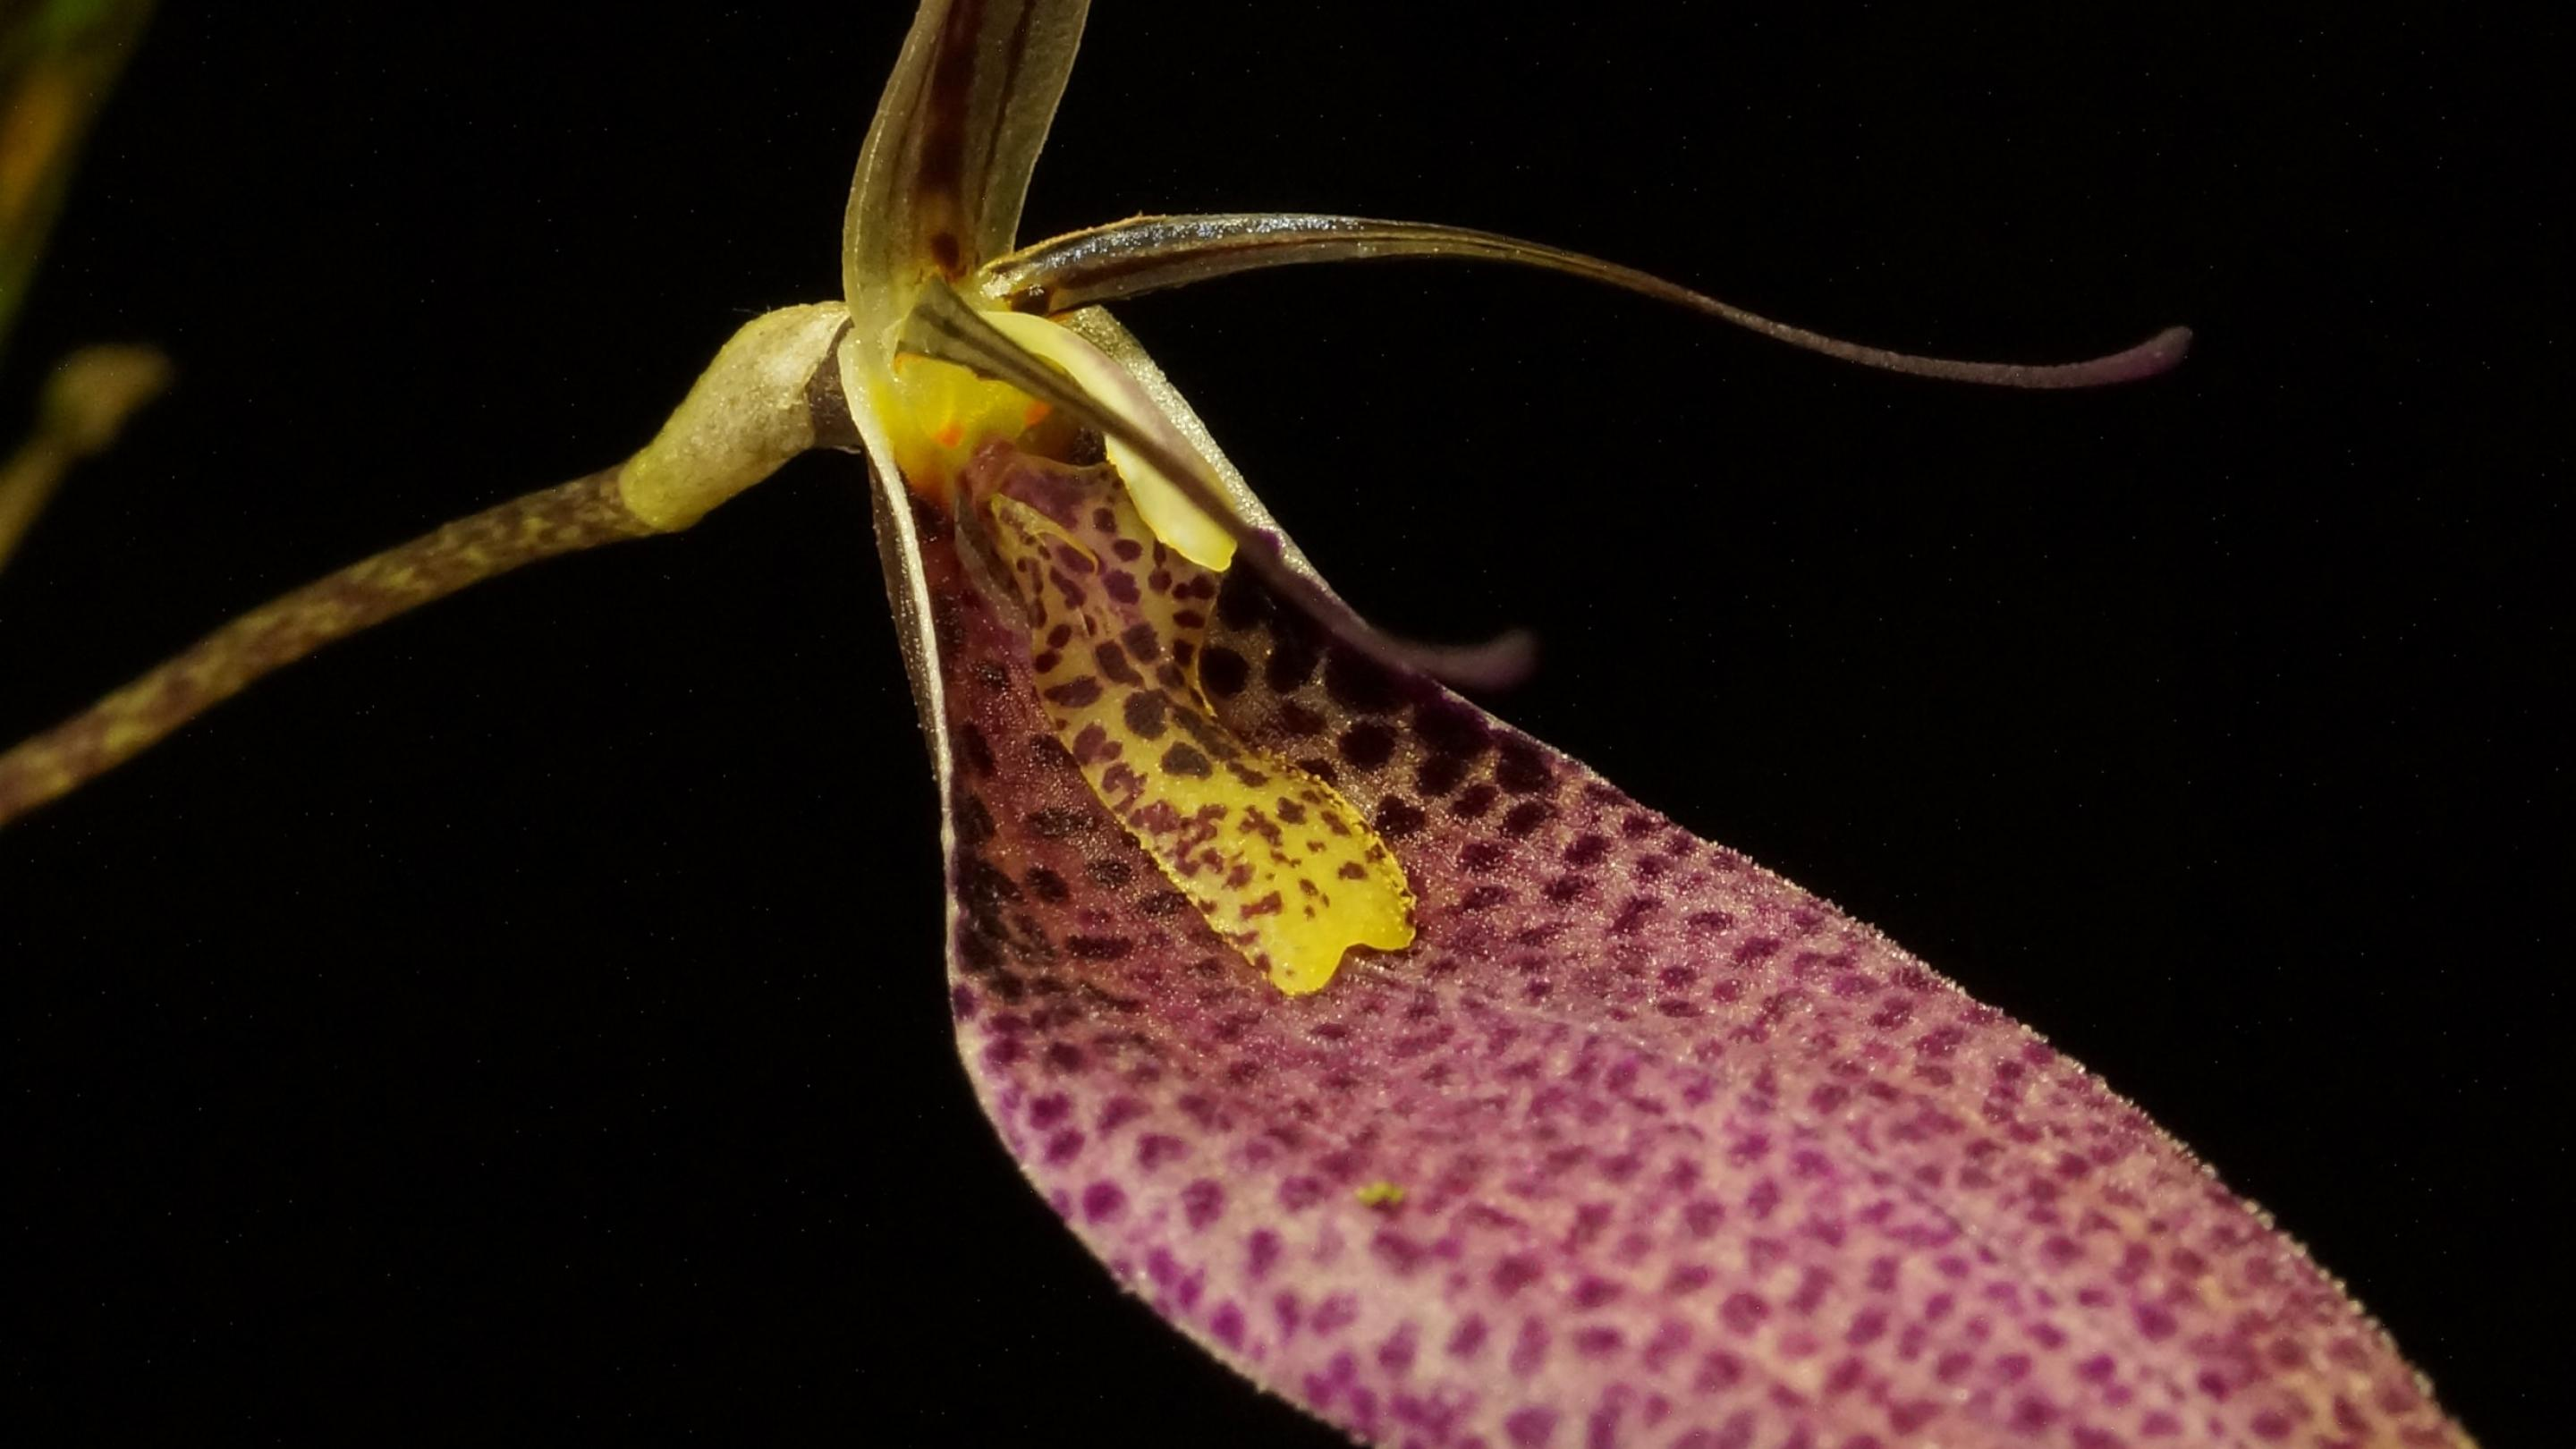 Image showing Restrepia contorta, an orchid endemic to Northern Andes region and a member of Pleurothallidinae, one of the most characteristic orchid groups of the Andean mountain flora